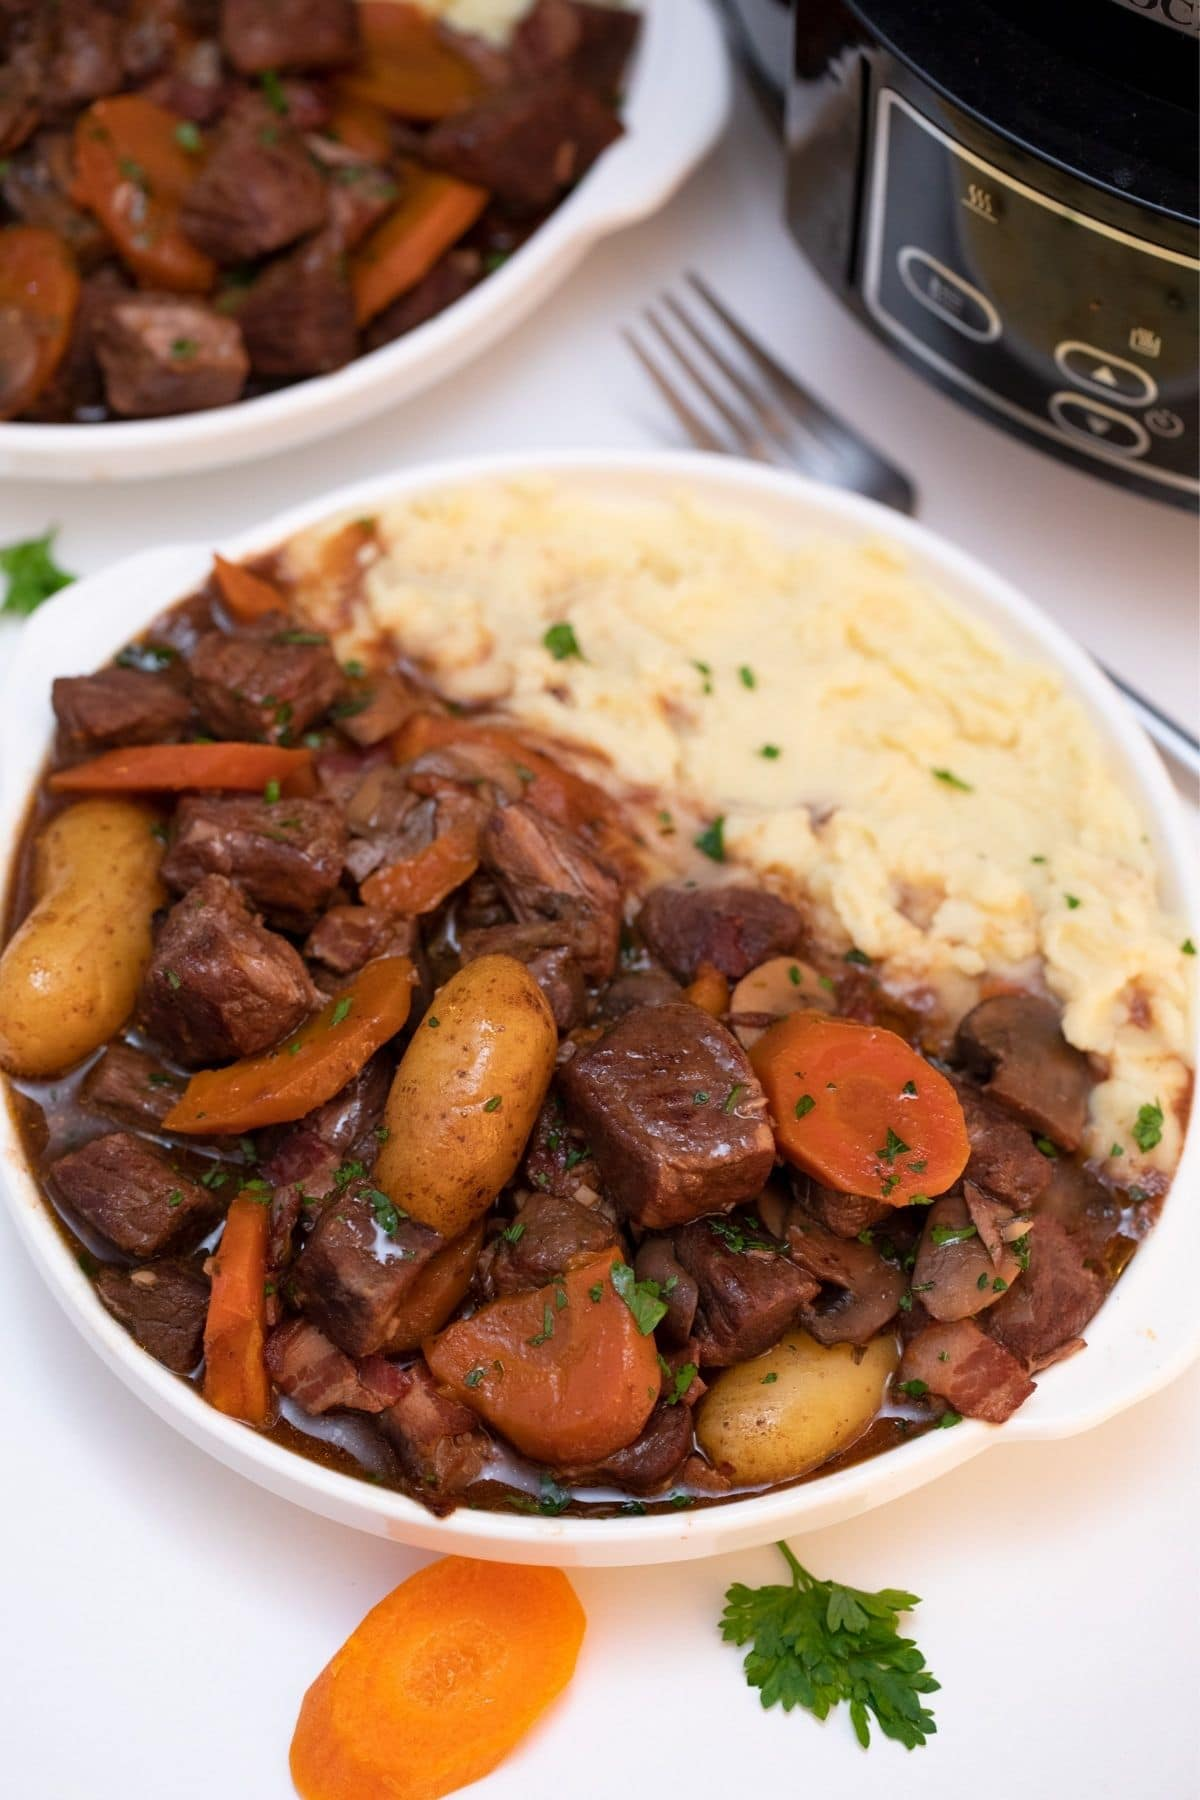 White bowl of mashed potatoes beef carrots and sauce on counter